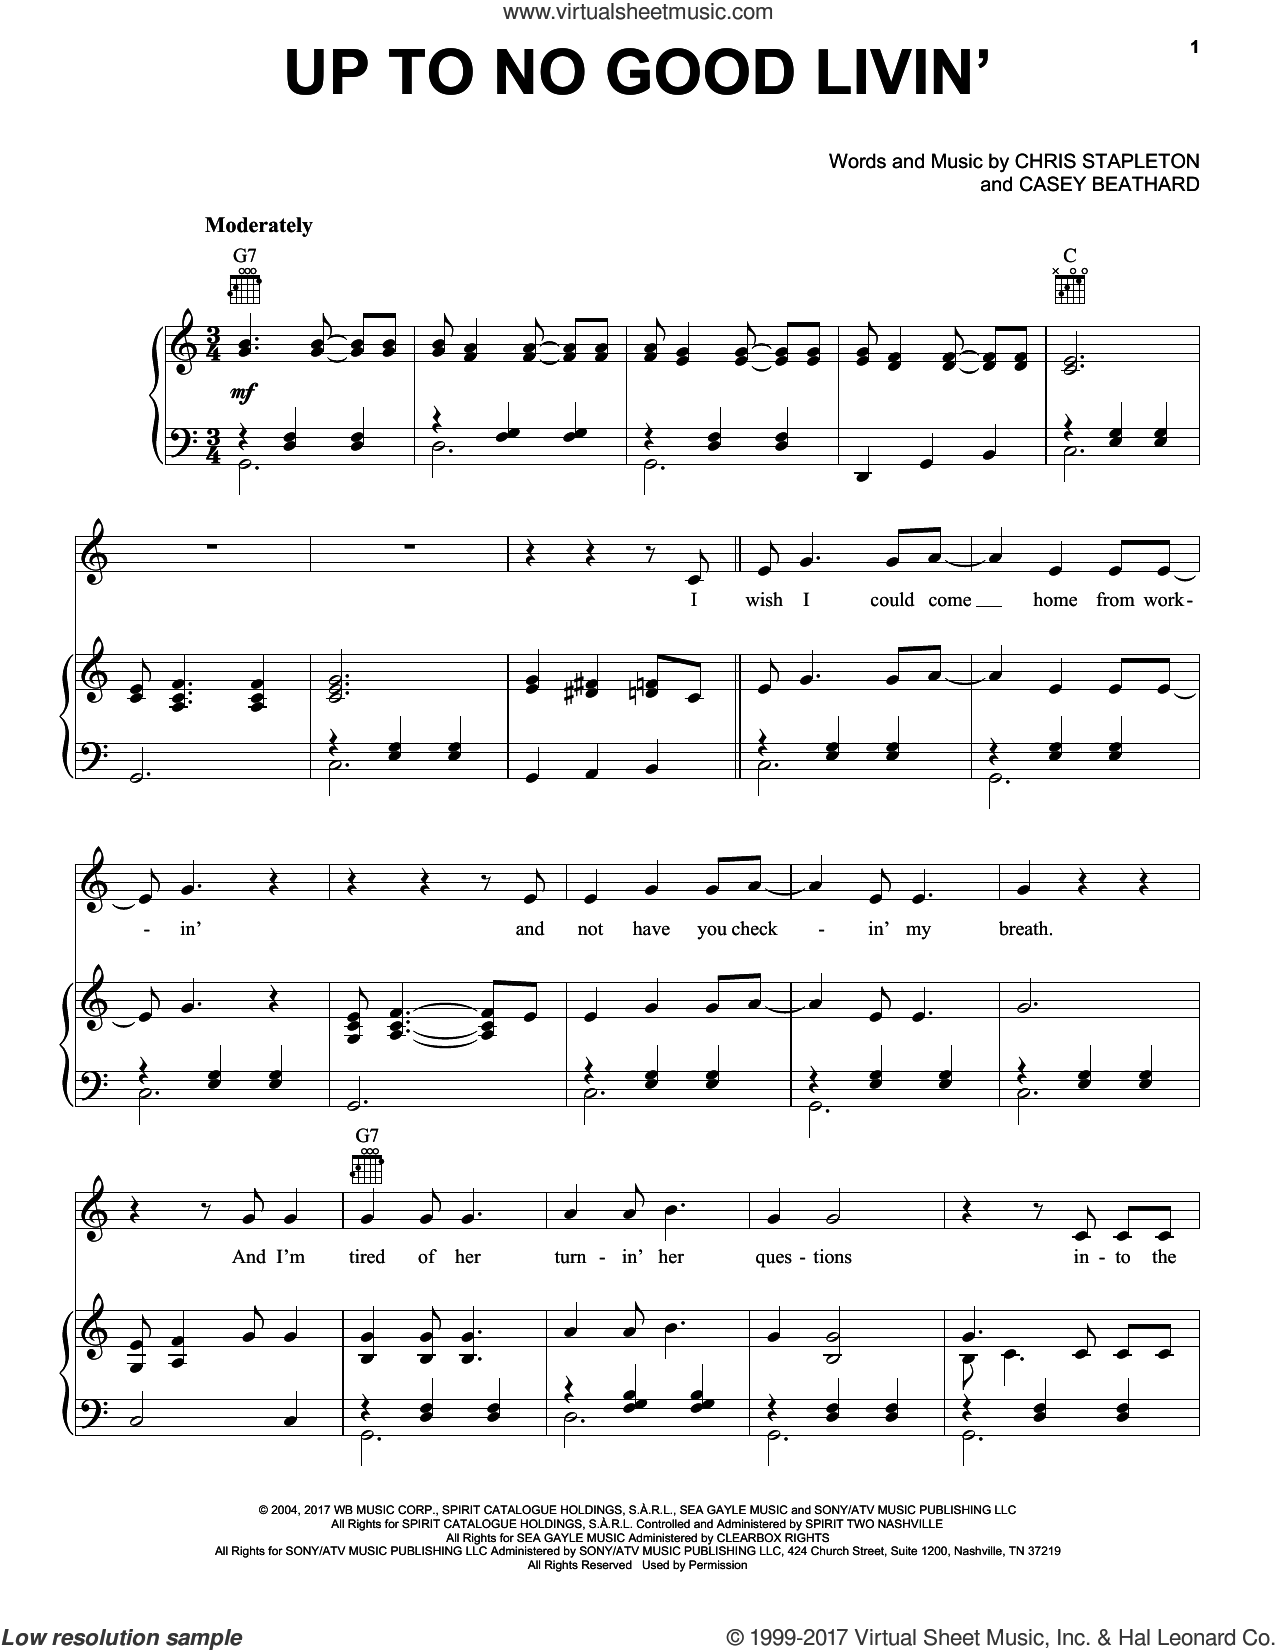 Up To No Good Livin' sheet music for voice, piano or guitar by Chris Stapleton and Casey Beathard, intermediate skill level